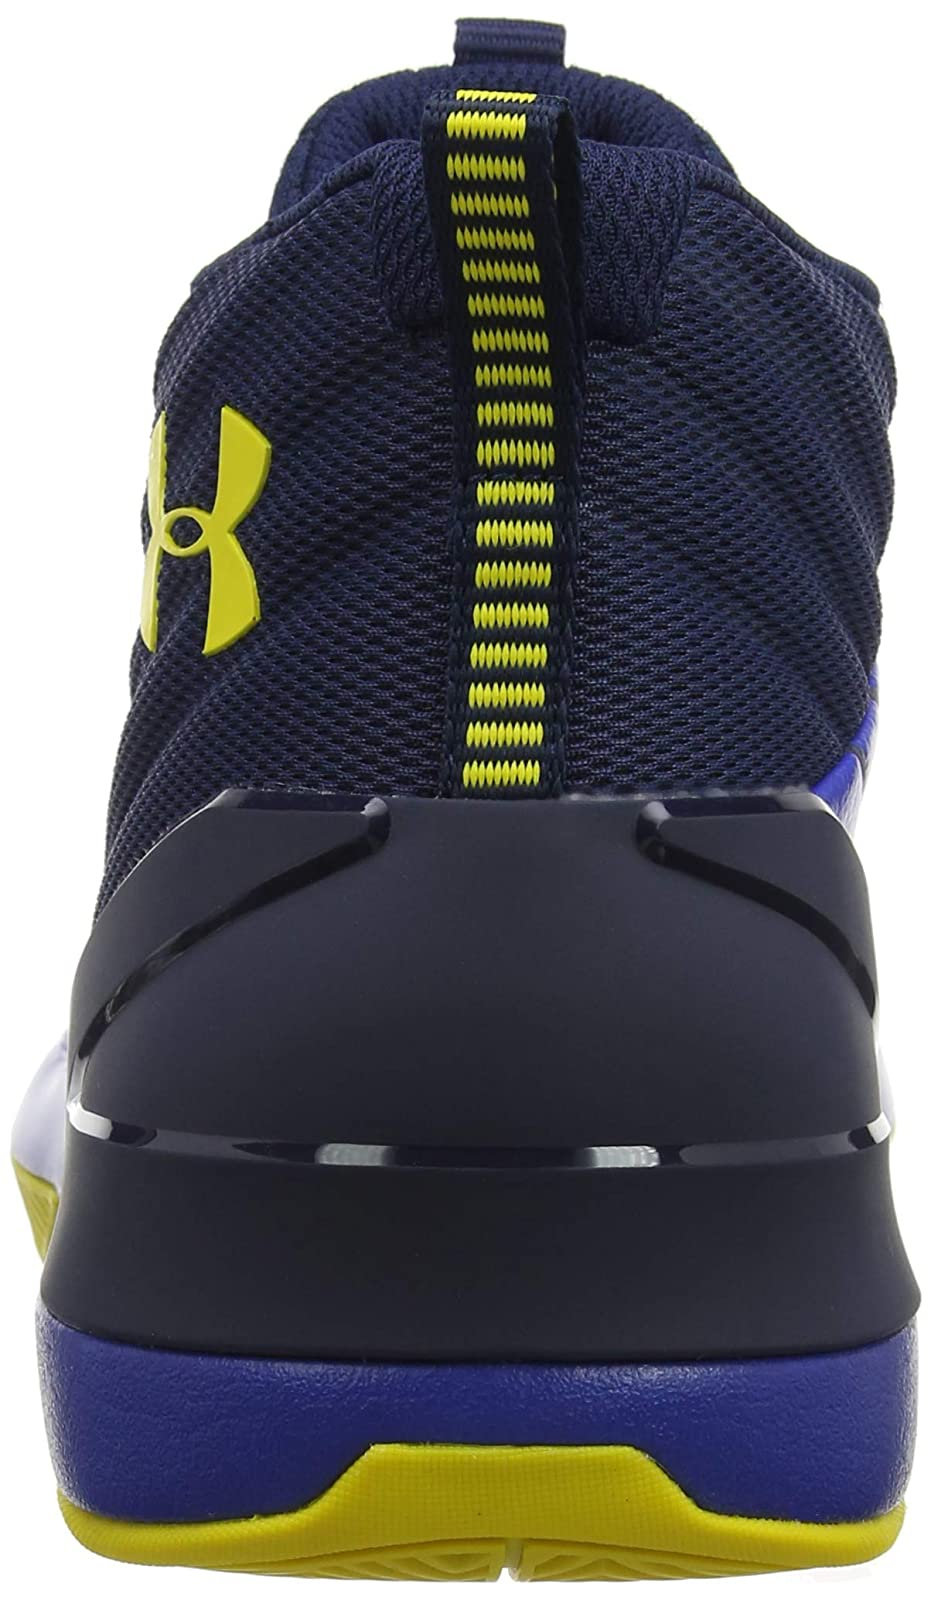 Under Armour Men's Launch Basketball Shoe 3020622 Academy (400)/Royal - 2